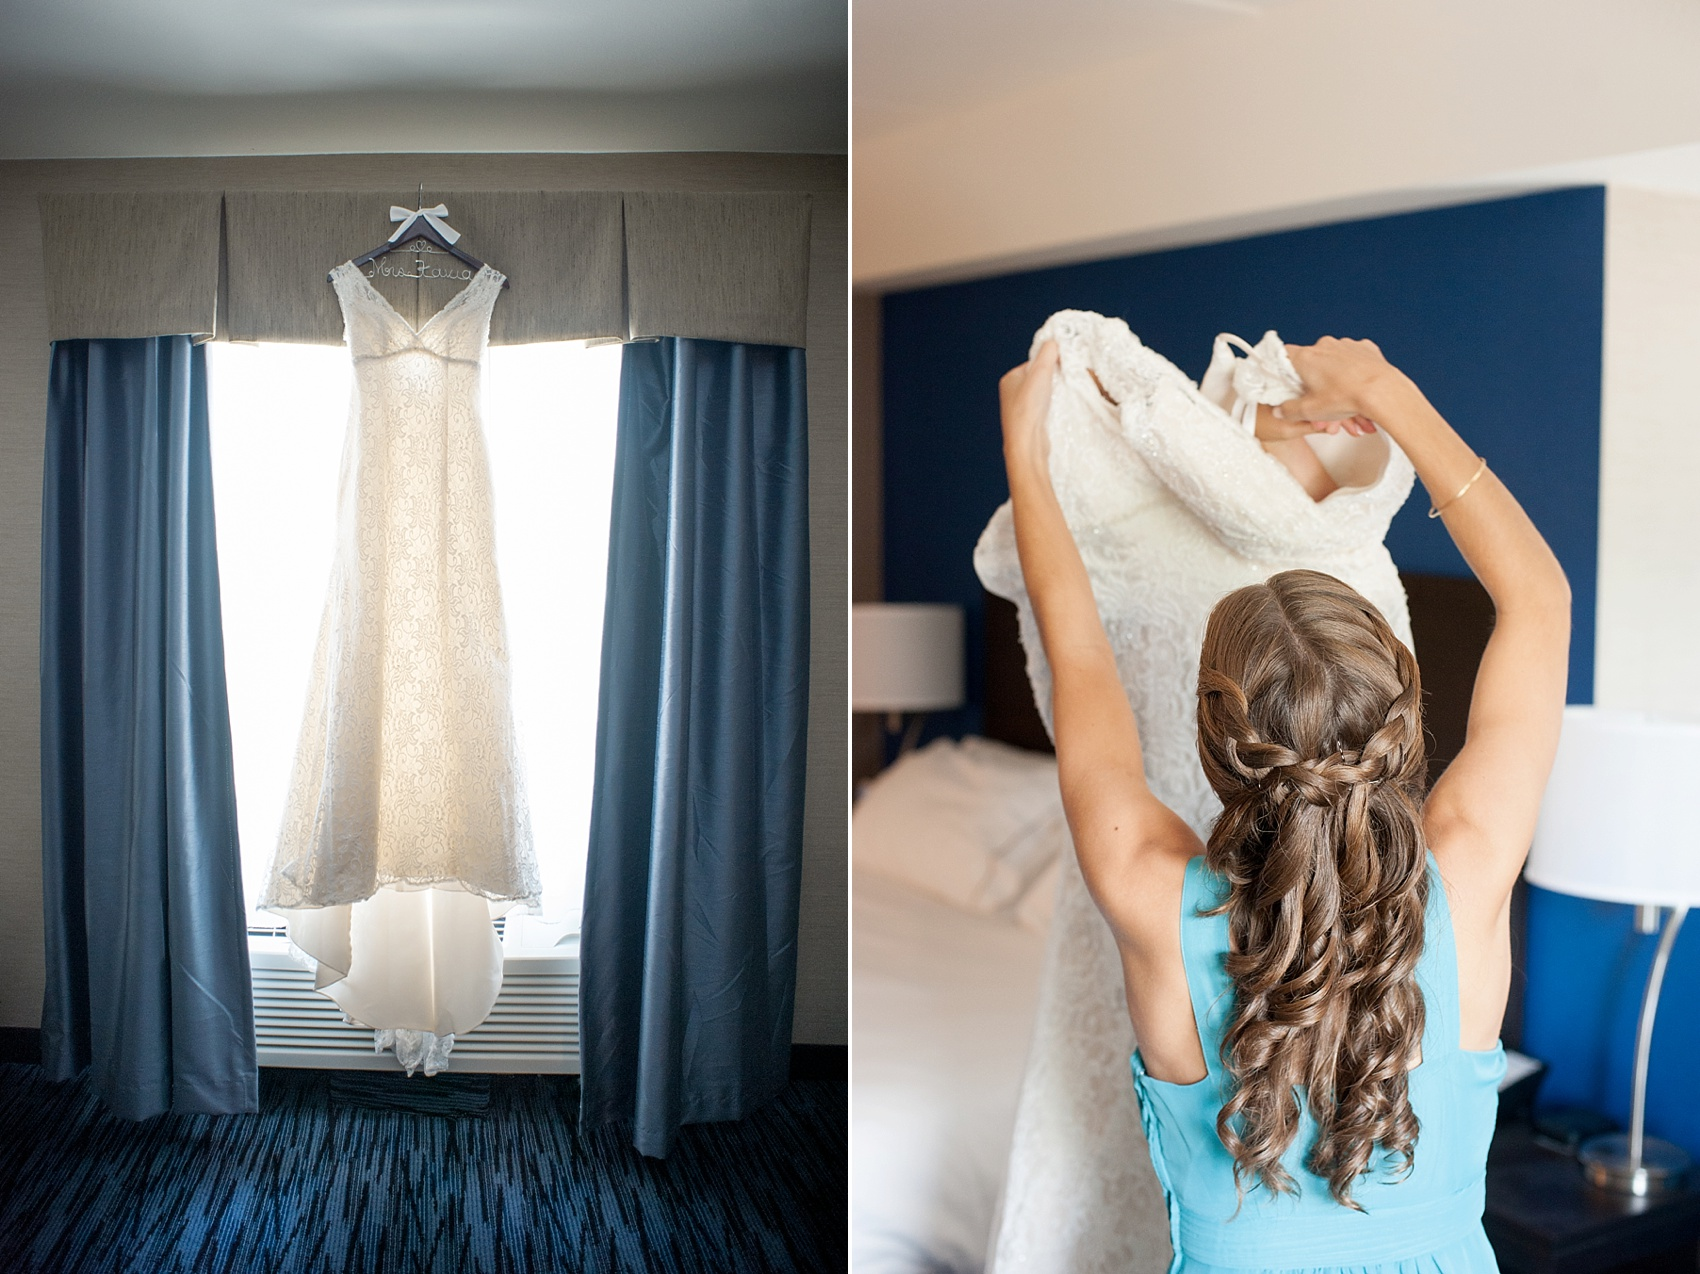 Lace wedding gown. Photos by Mikkel Paige Photography for a Hollow Brook Golf Club wedding.